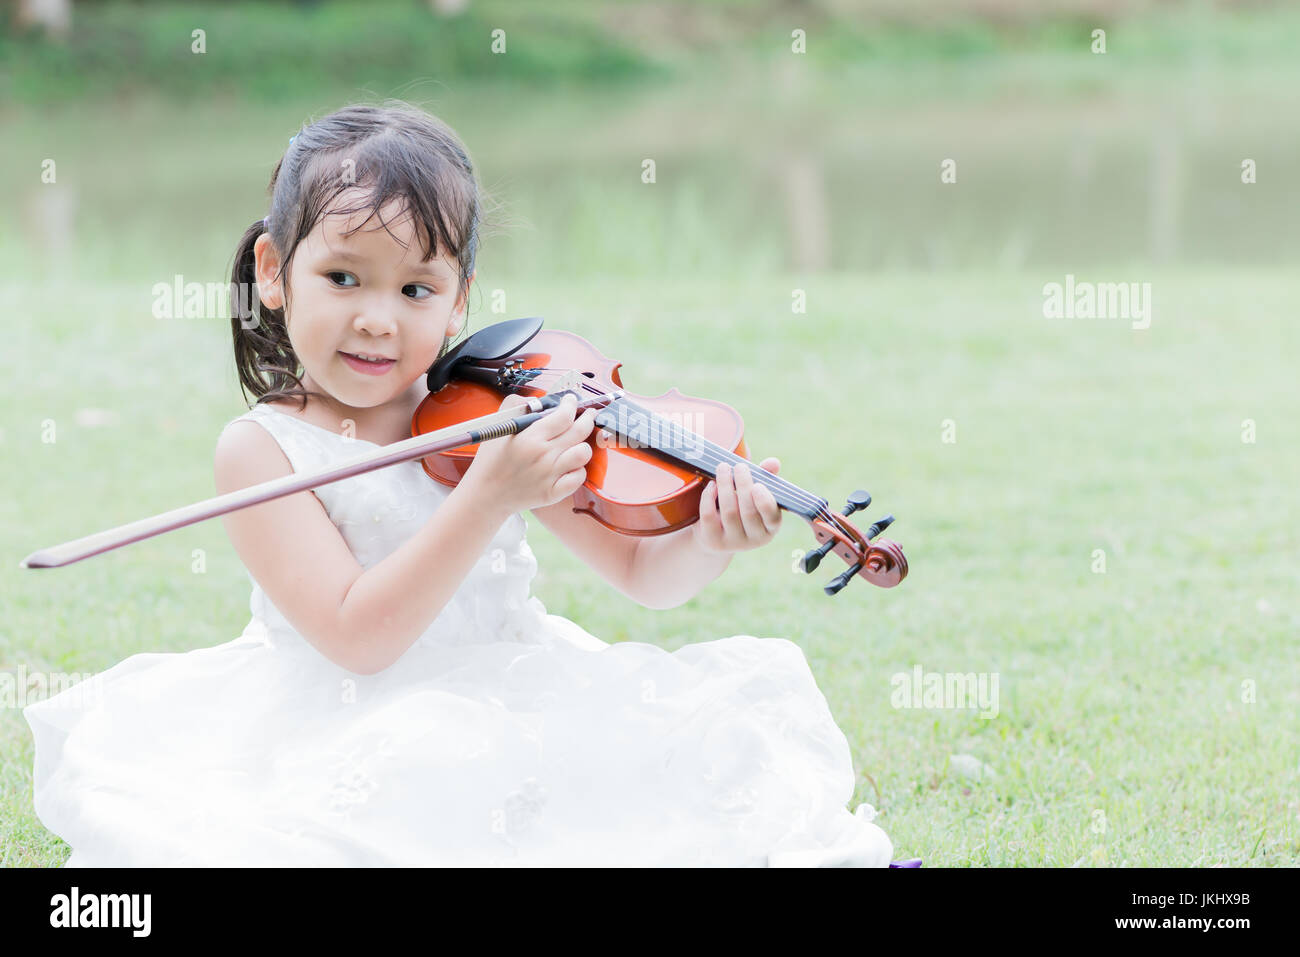 cute asian girl play violin in park or nature background. Stock Photo